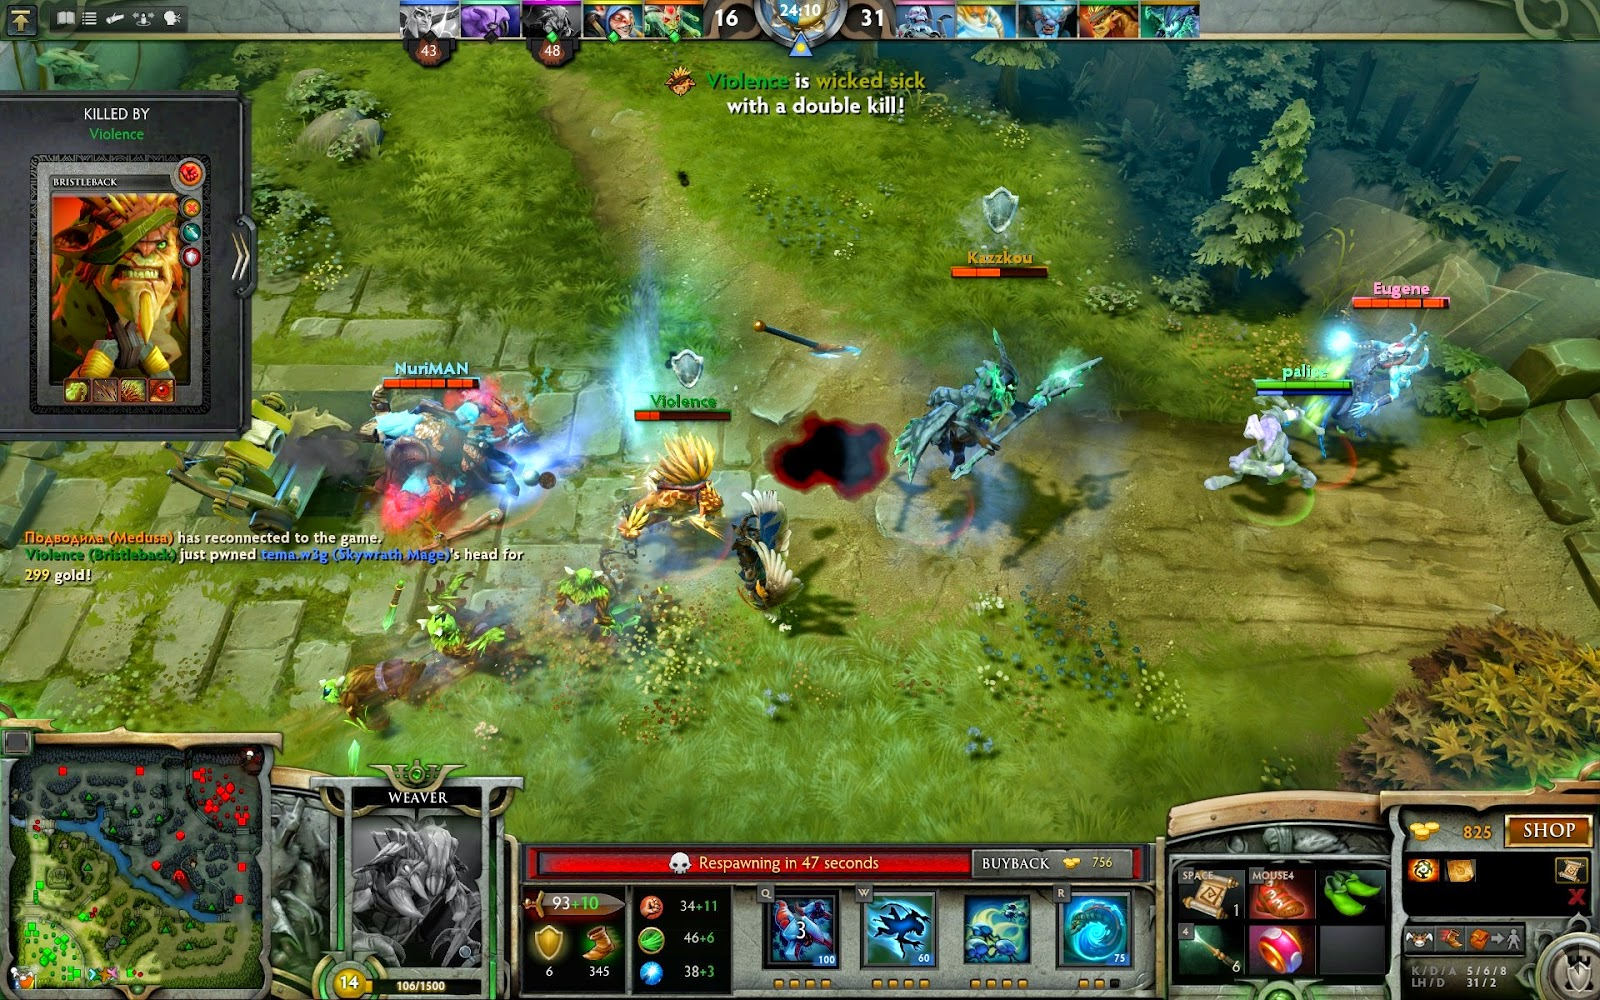 Proxy4game helps reduce Ping in games: Lineage 2, Aion, Dota 2